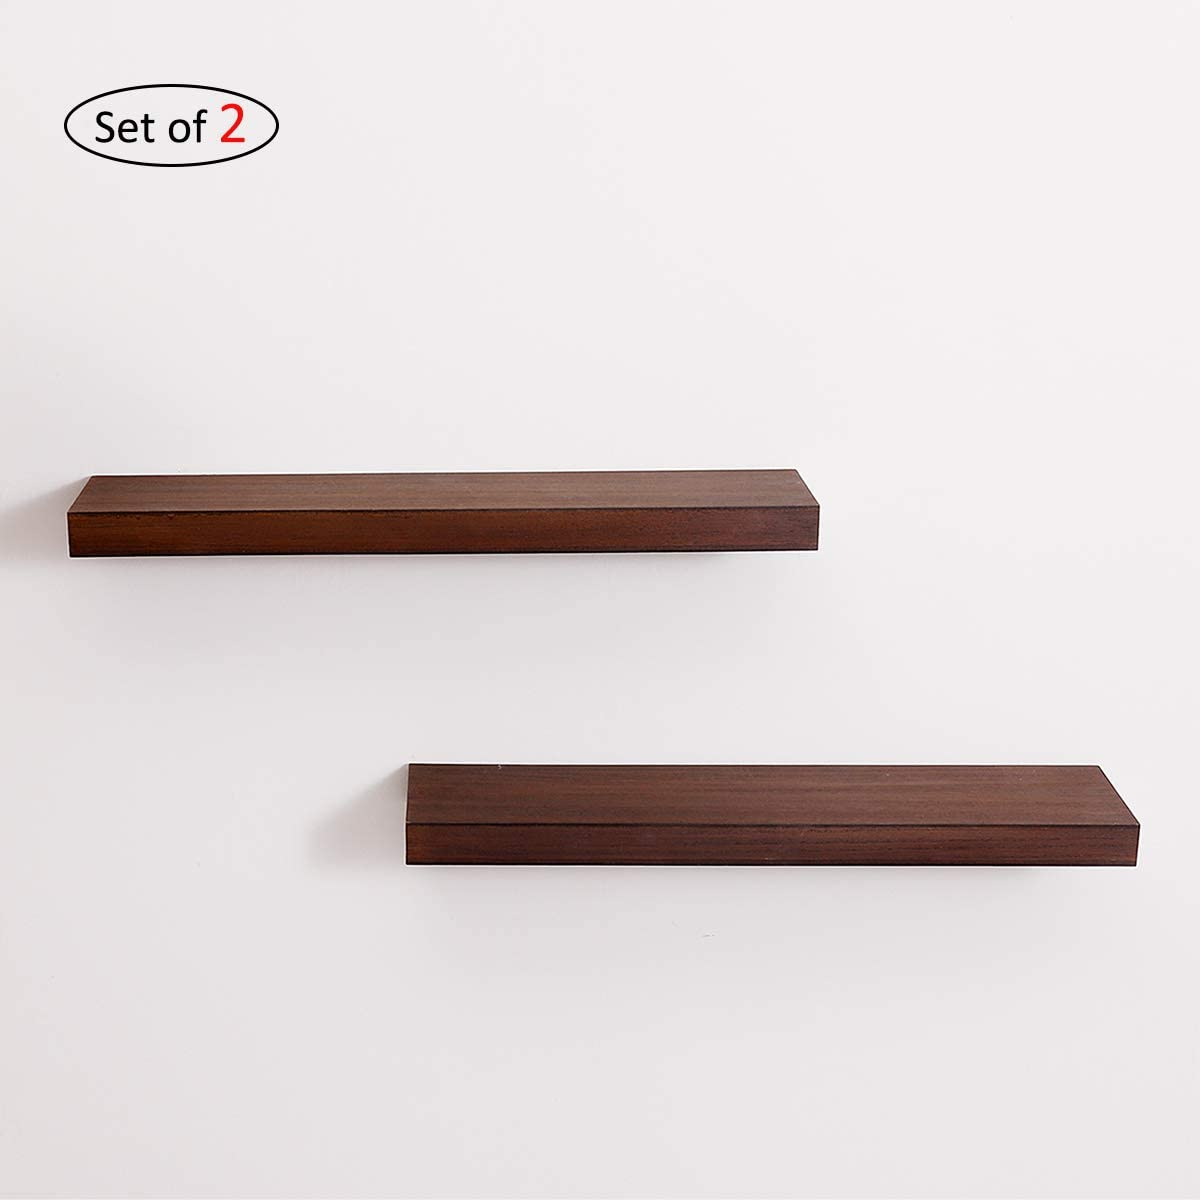 UMICAL Floating Shelves Premium 2 Tier Wood Wall Shelf Set of 2 , Hardware and Fasteners Included Walnut, 24 x 5